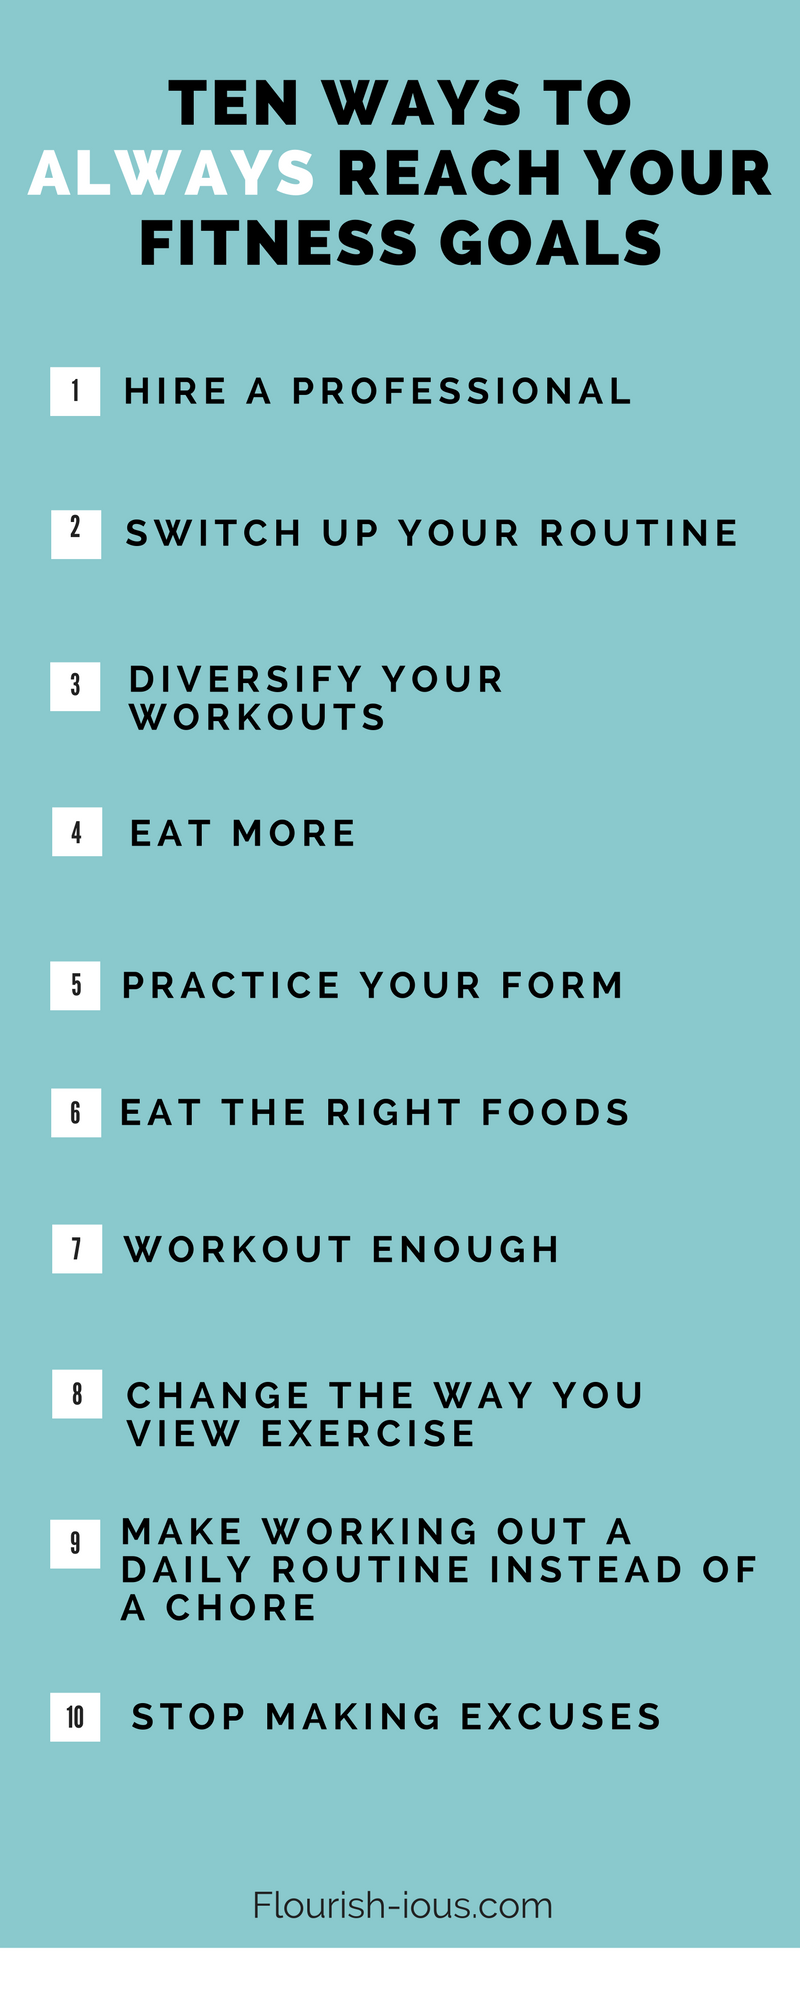 #fitness, fitness tips, fitness goals, exercises, training, fitness motivation, health and fitness, nutrition, losing weight, workouts, fitness challenges